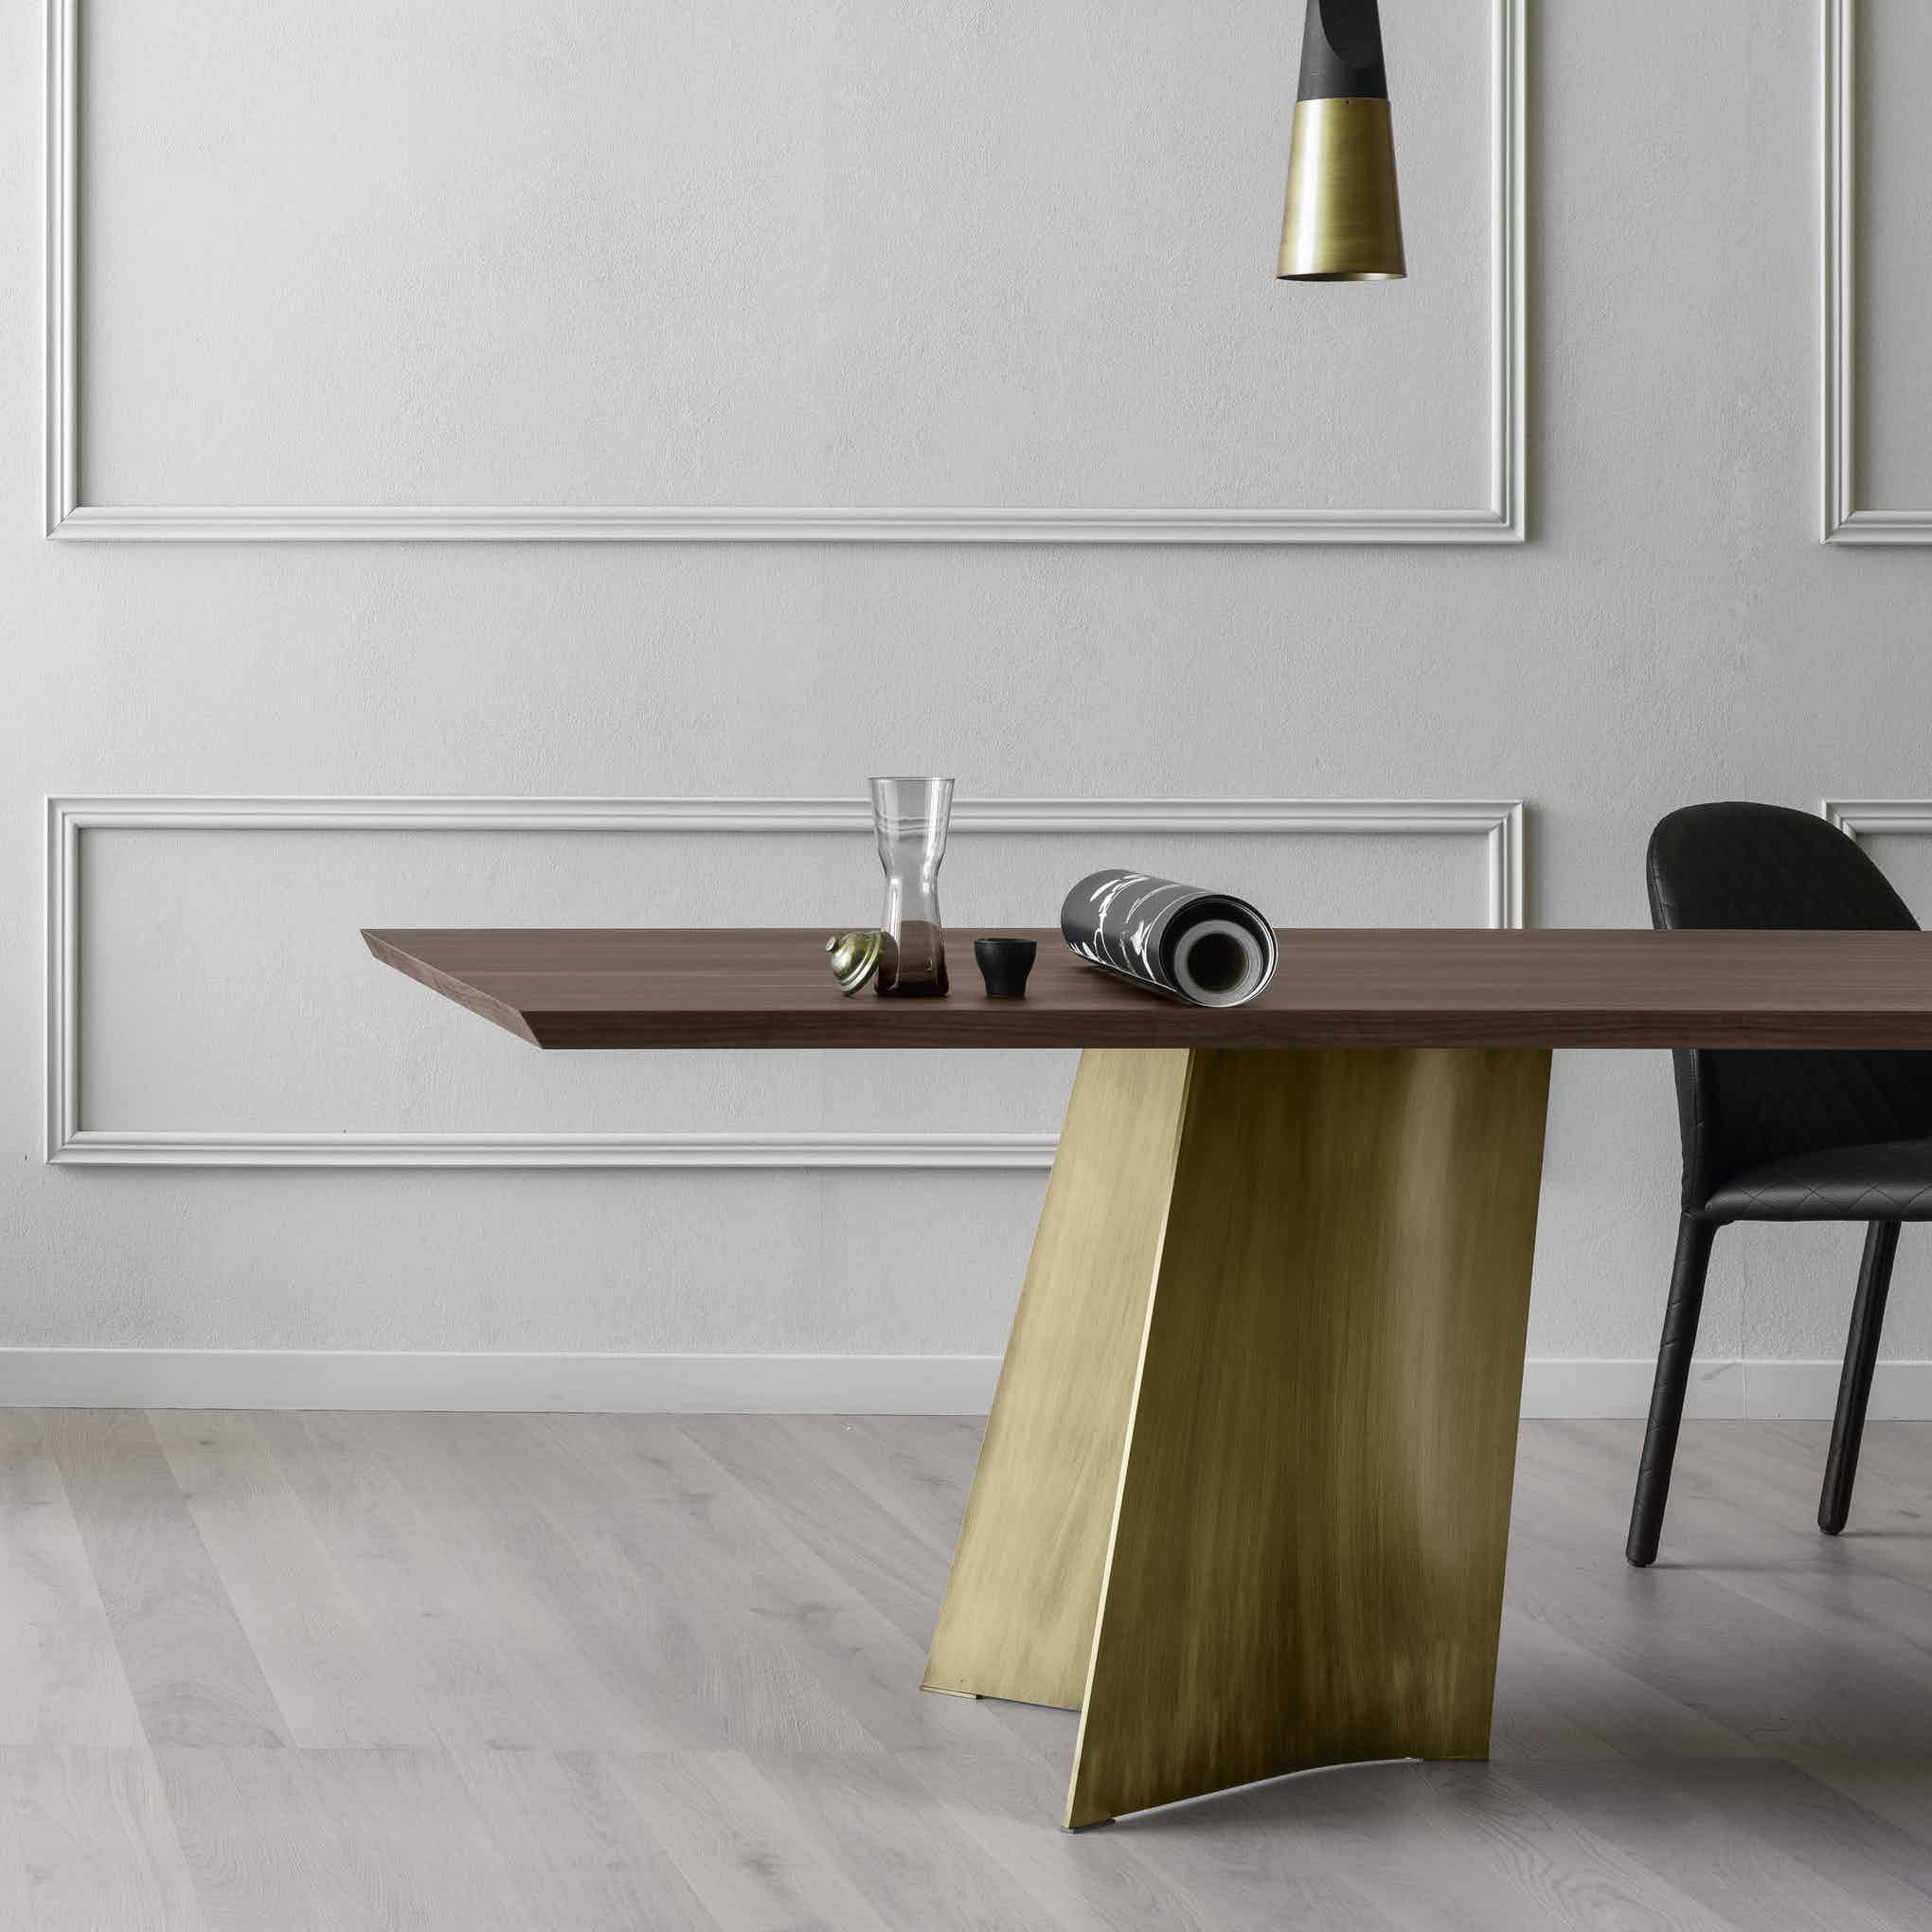 Miniforms Maggese Table Half Haute Living